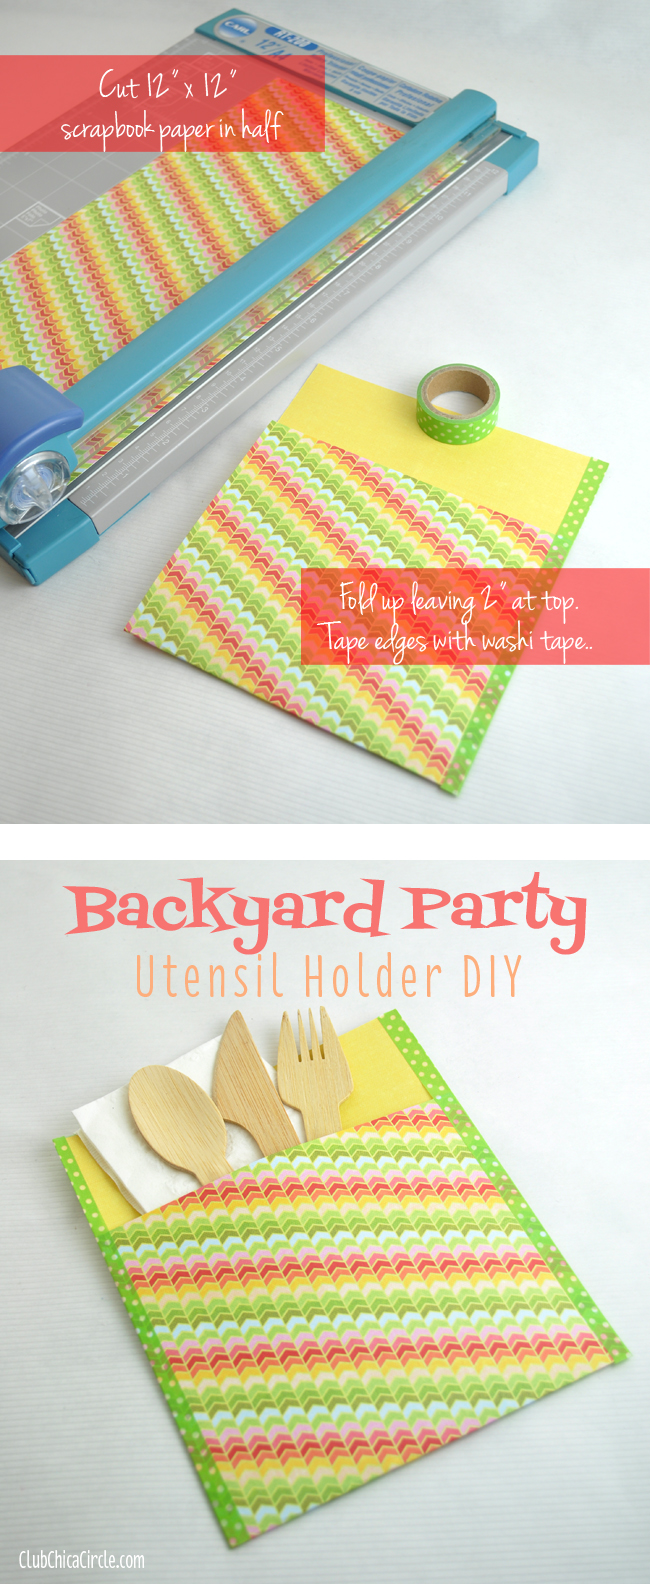 Backyard party utensil holder DIY